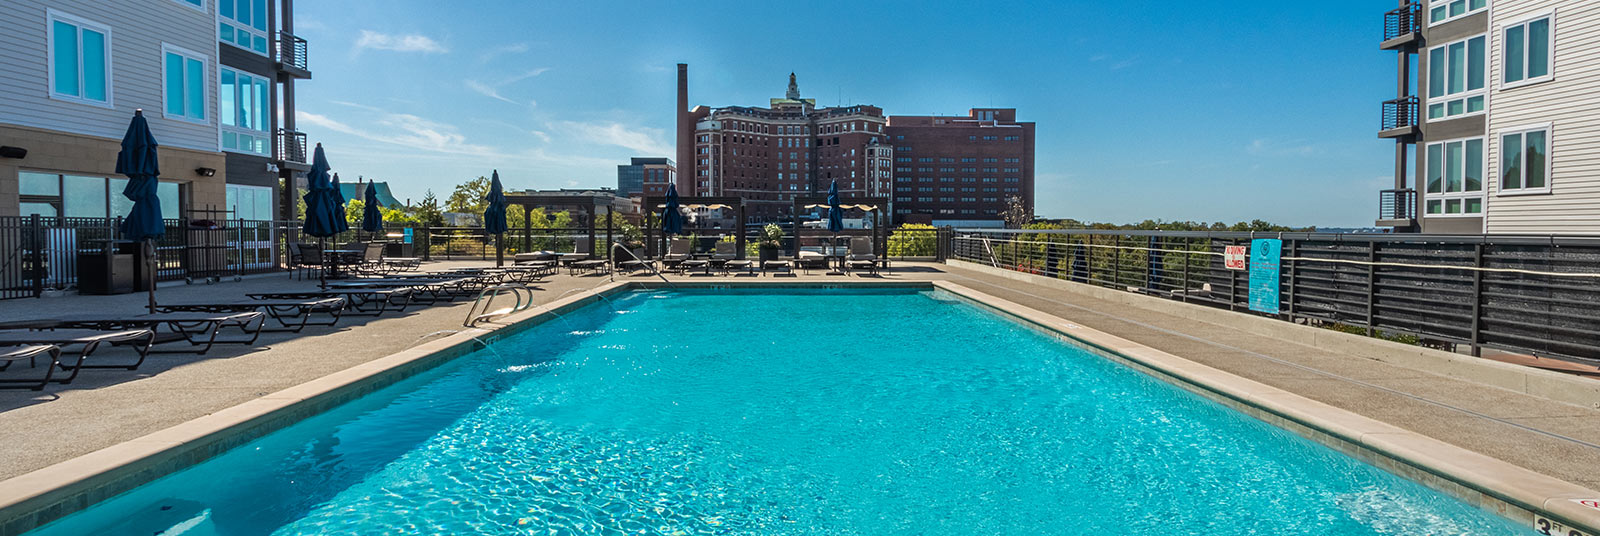 The pool and amenities deck at One41 Wellington in Cincinnati, Ohio.